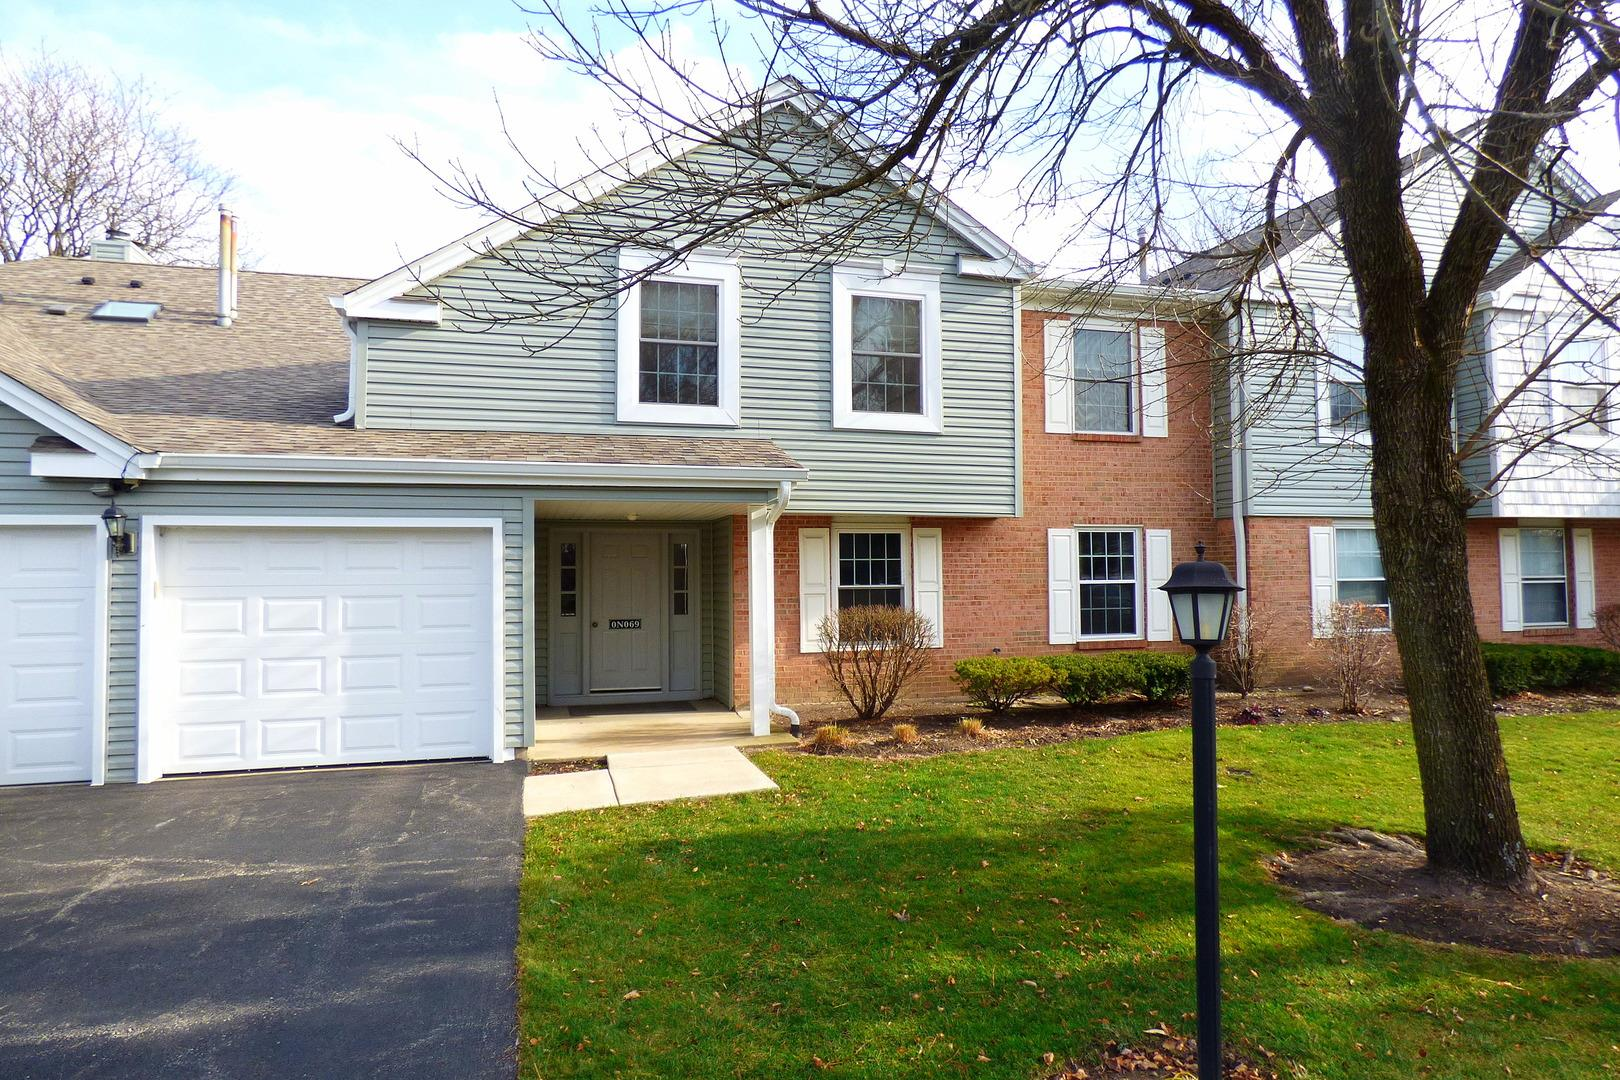 0N069 Coniston Court #705, Winfield, IL 60190 - #: 10941017